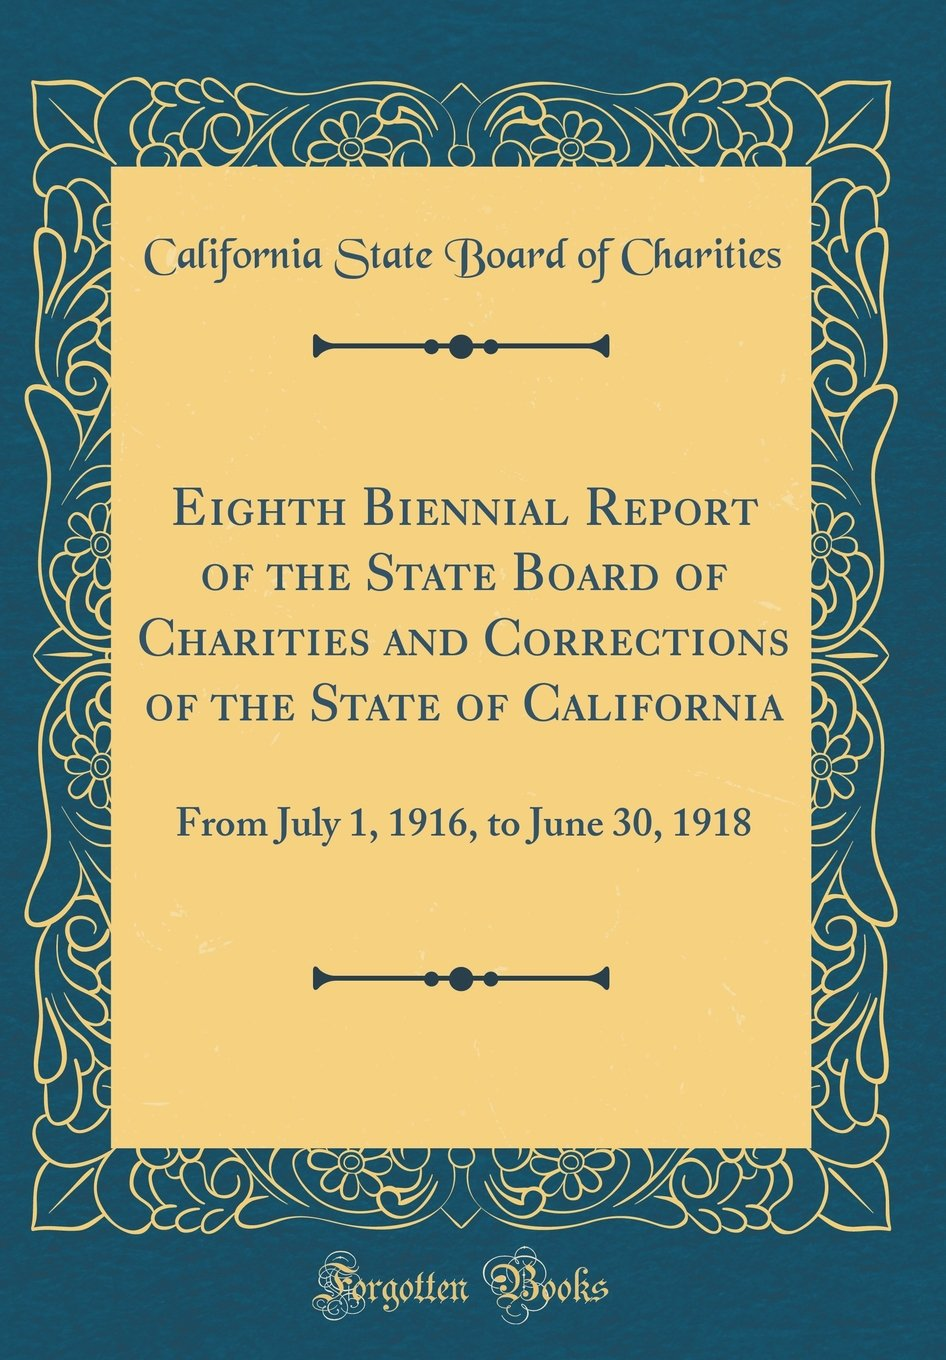 Eighth Biennial Report of the State Board of Charities and Corrections of the State of California: From July 1, 1916, to June 30, 1918 (Classic Reprint) pdf epub